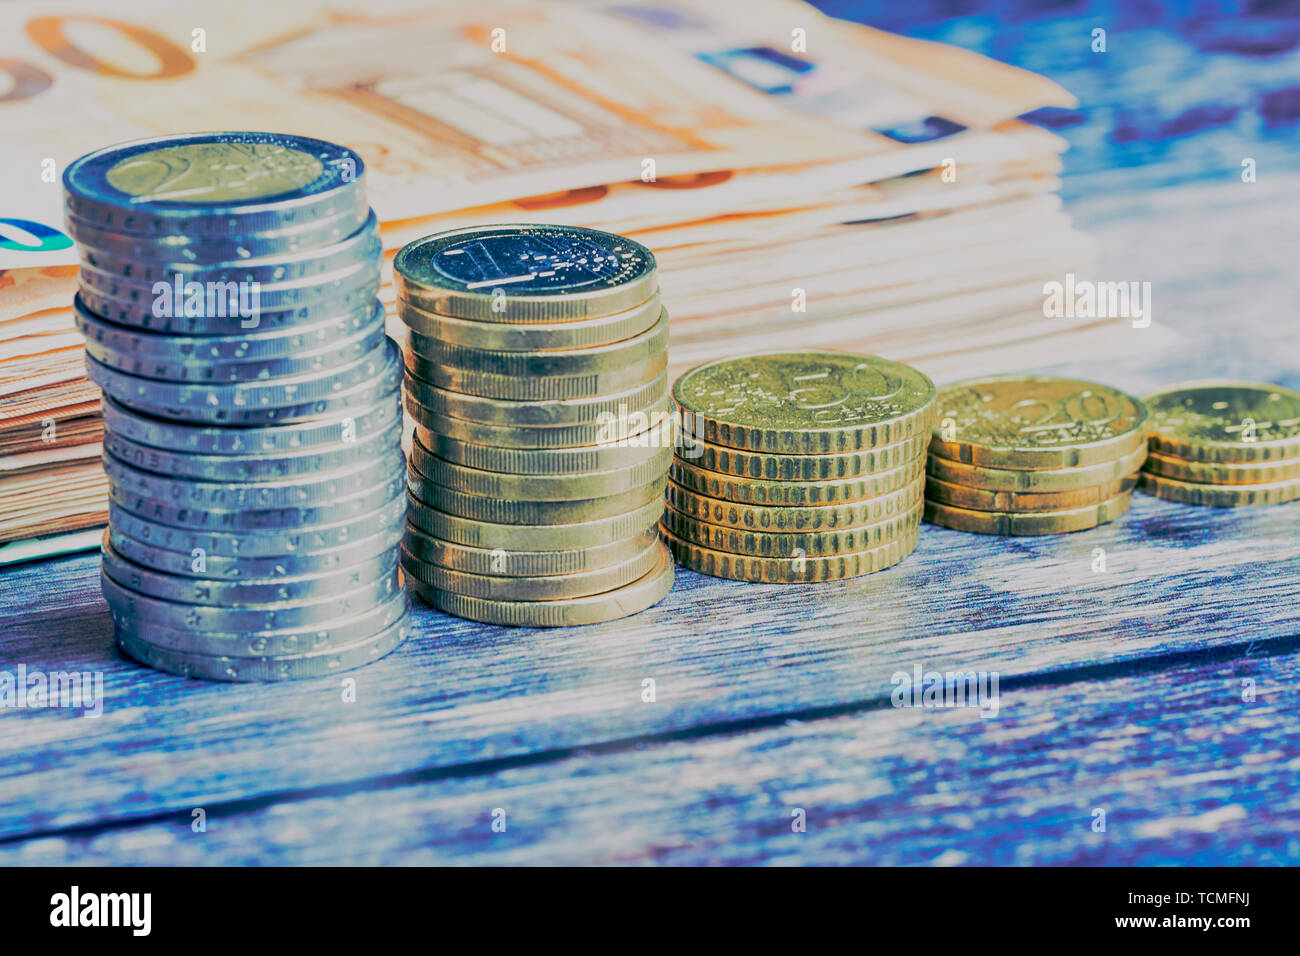 stacks of Euro coins and cent coins in front of blurred banknotes on a wooden background in a cold color style - Stock Image